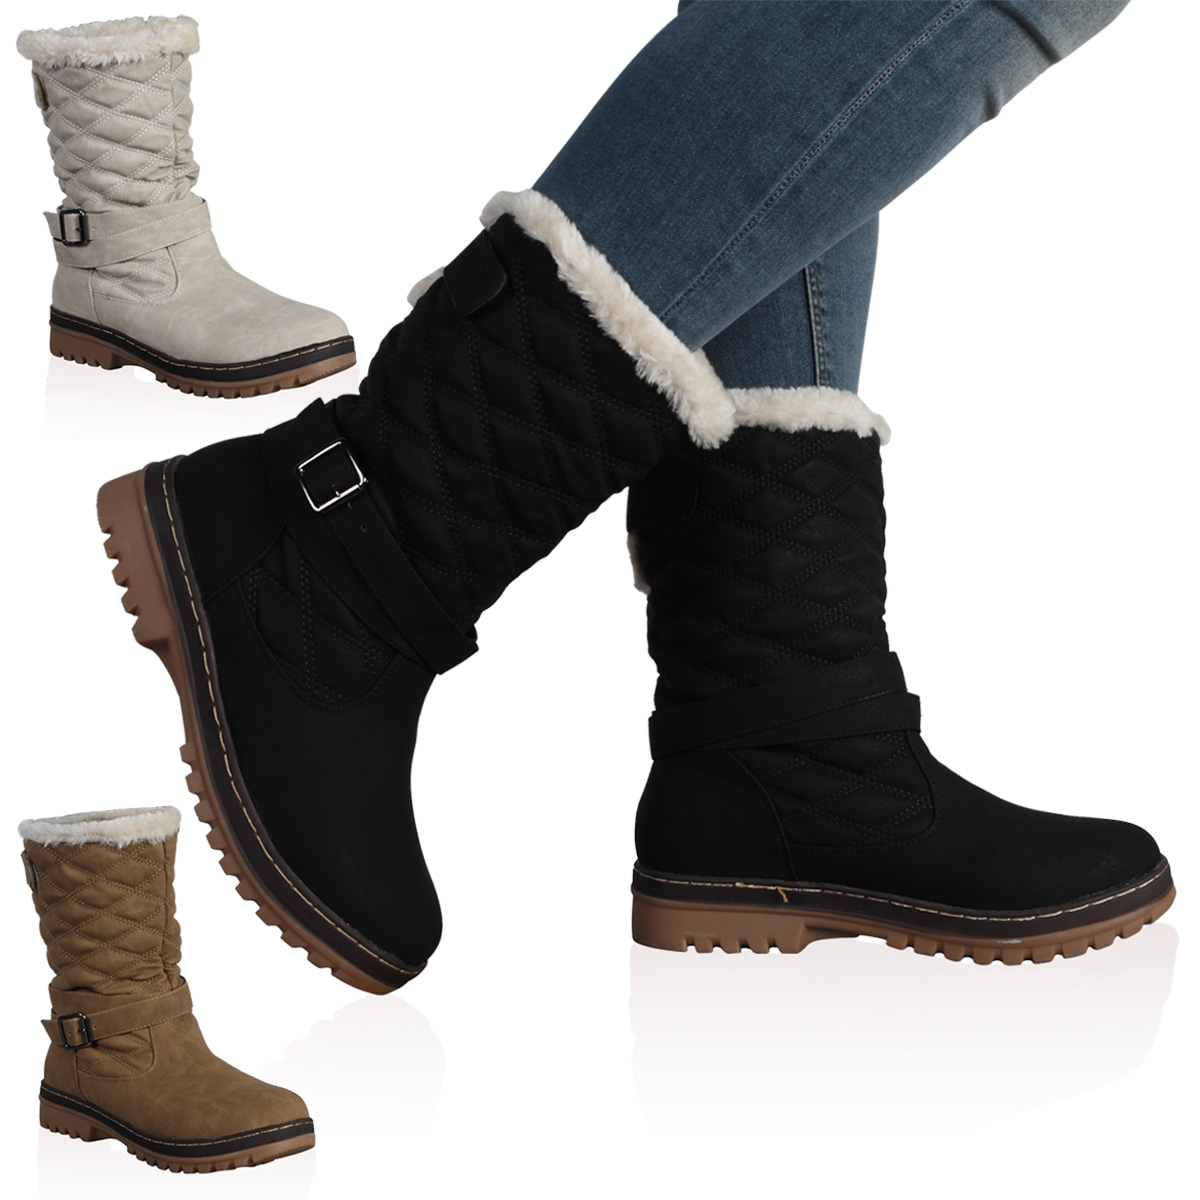 Womens Winter Boots Sale IHa4RthM